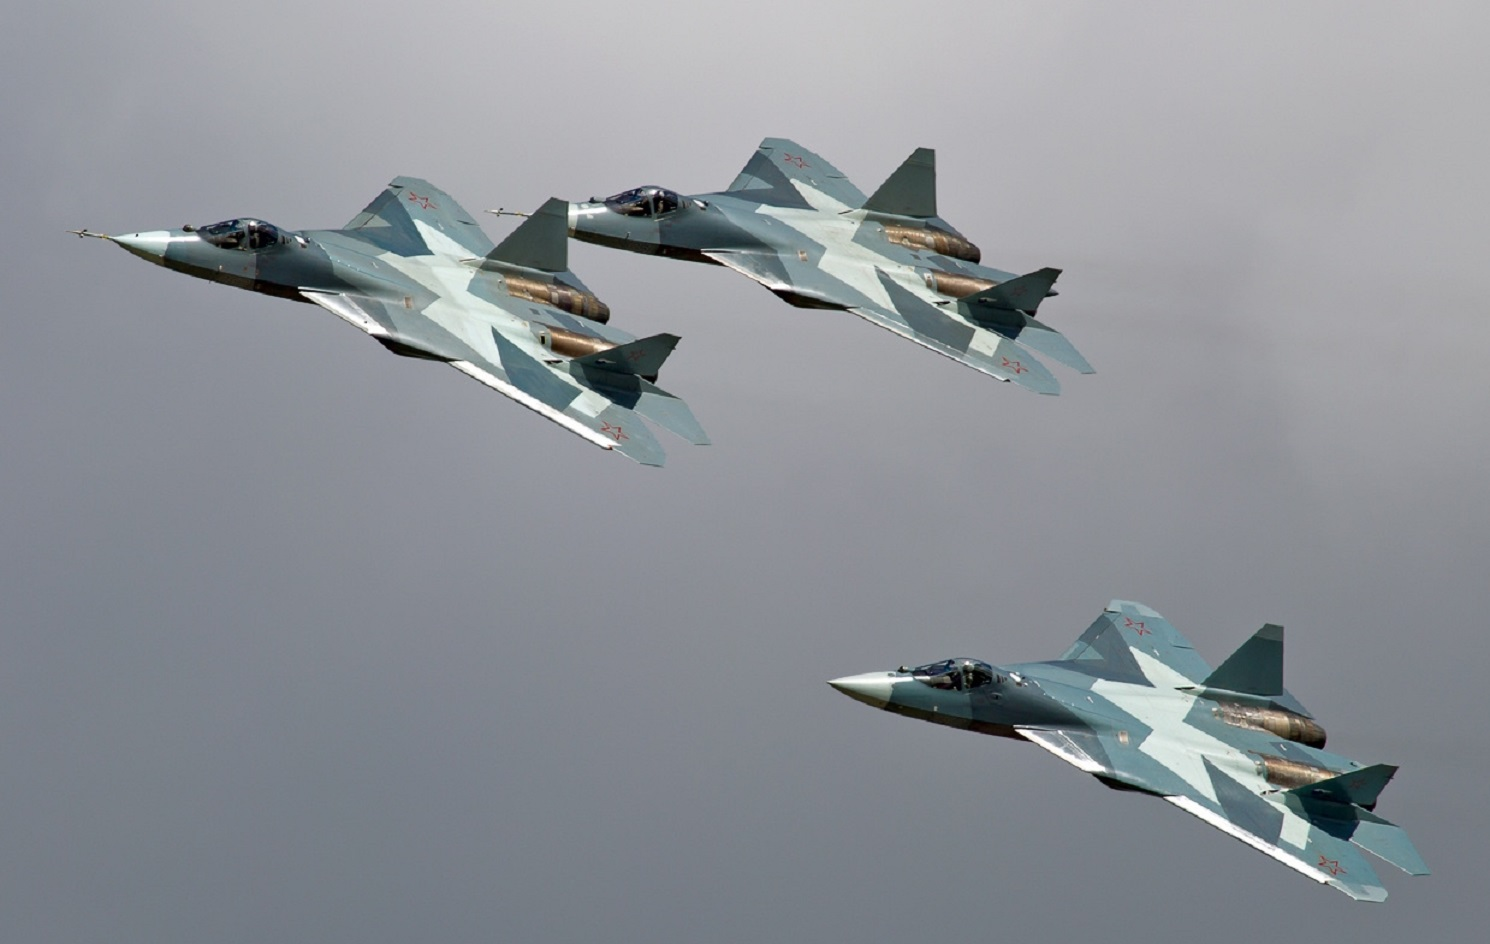 Just Say Nyet: Russia Wants to Become a Stealth Fighter Superpower